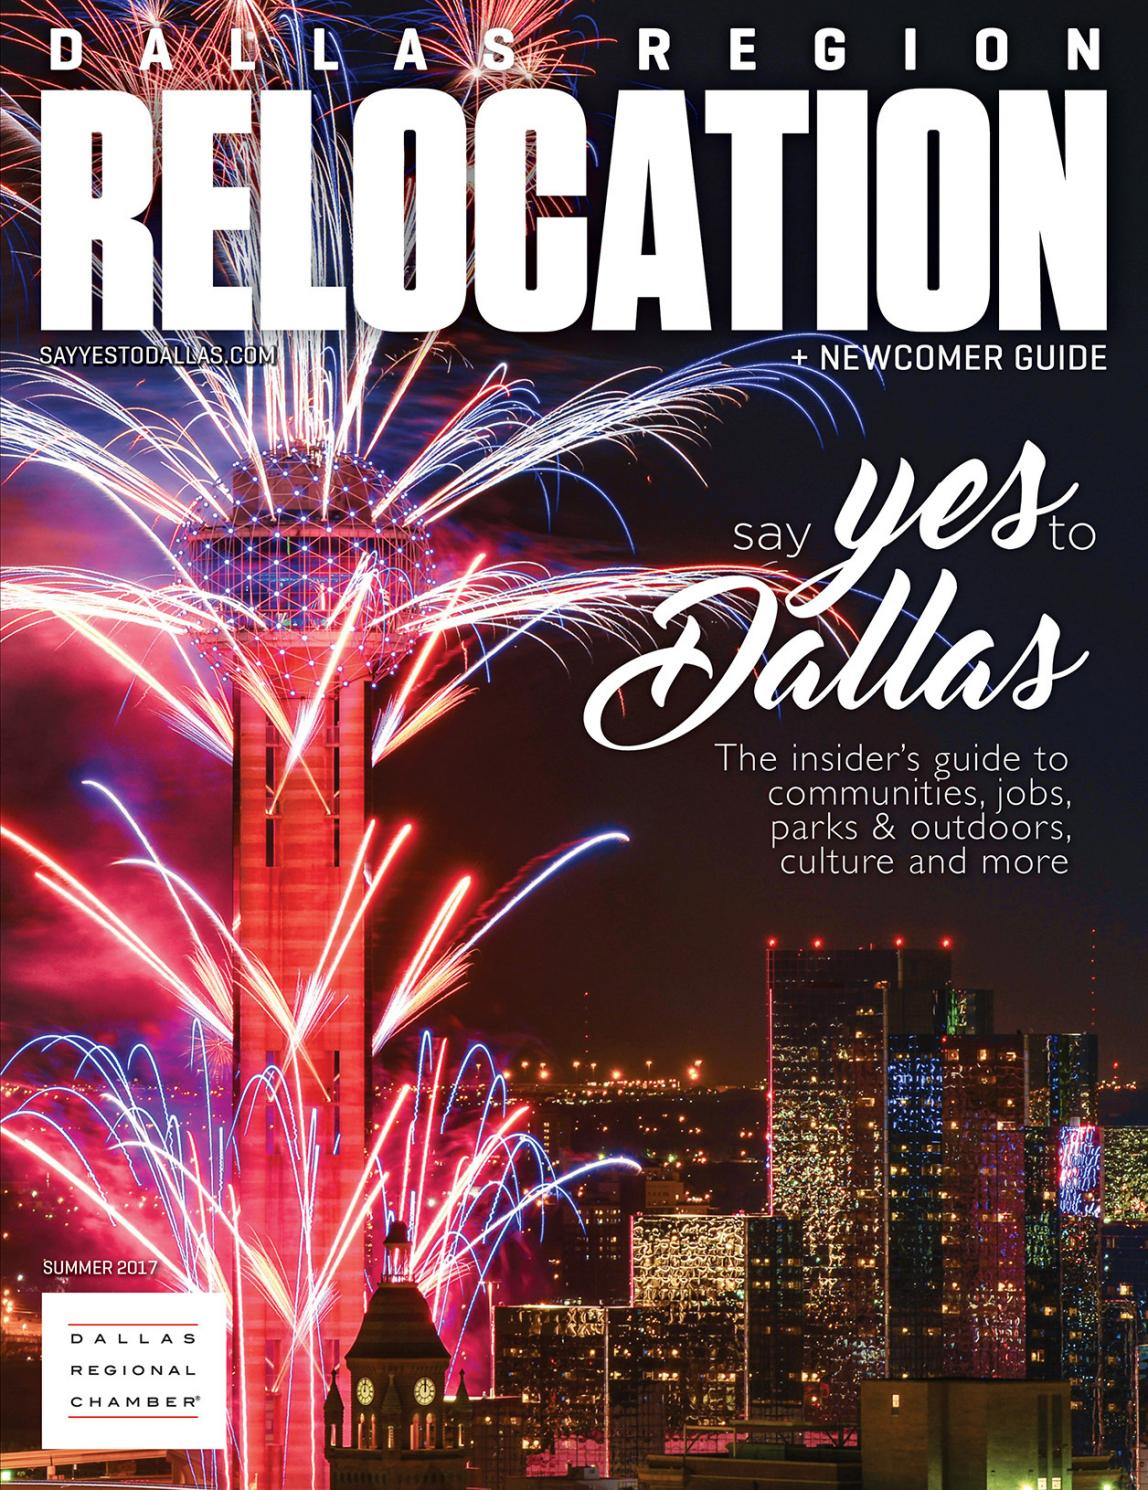 hot sale online f239e 1fc0a Dallas Region Relocation + Newcomer Guide by Dallas Regional Chamber  Publications - issuu